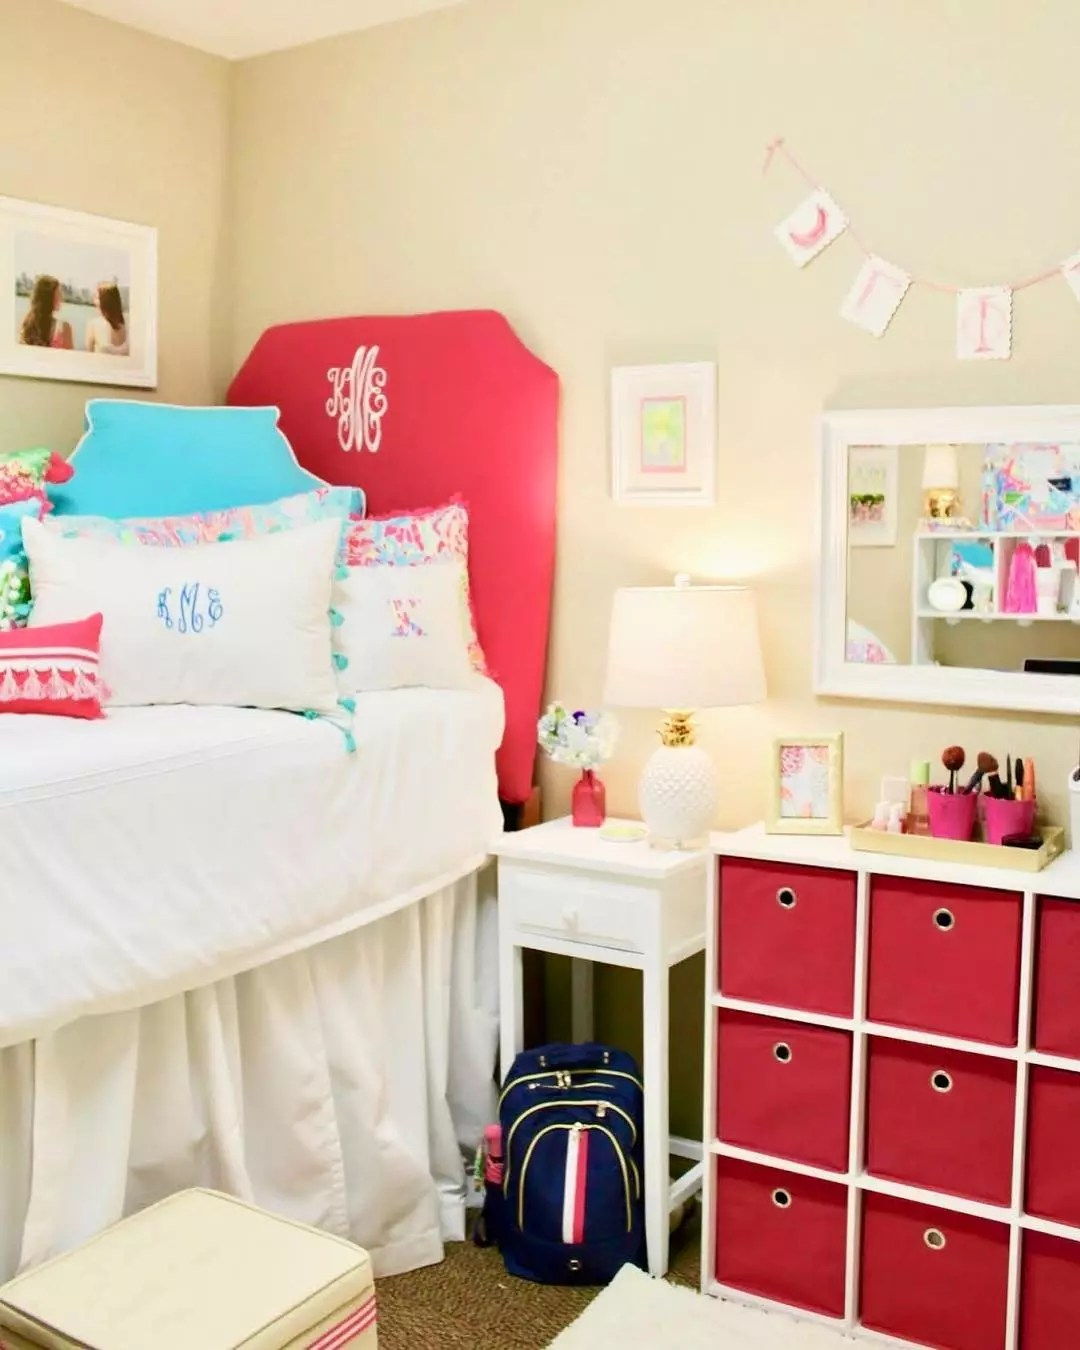 College Dorm Room with Red Cube Storage Alongside Bed. Photo by Instagram user @letsgetpreppy_